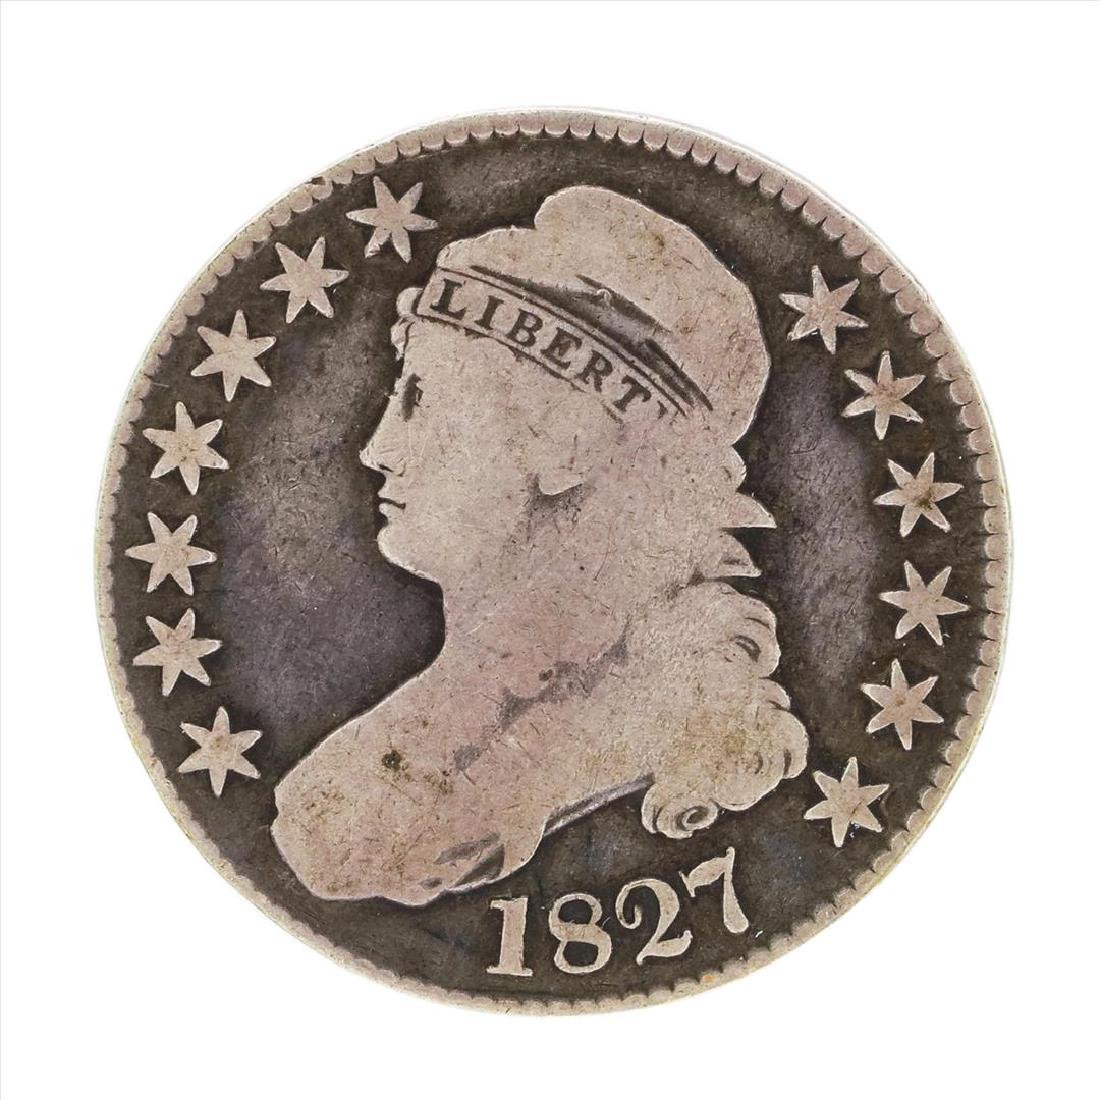 1827 Curled Capped Bust Half Dollar Coin